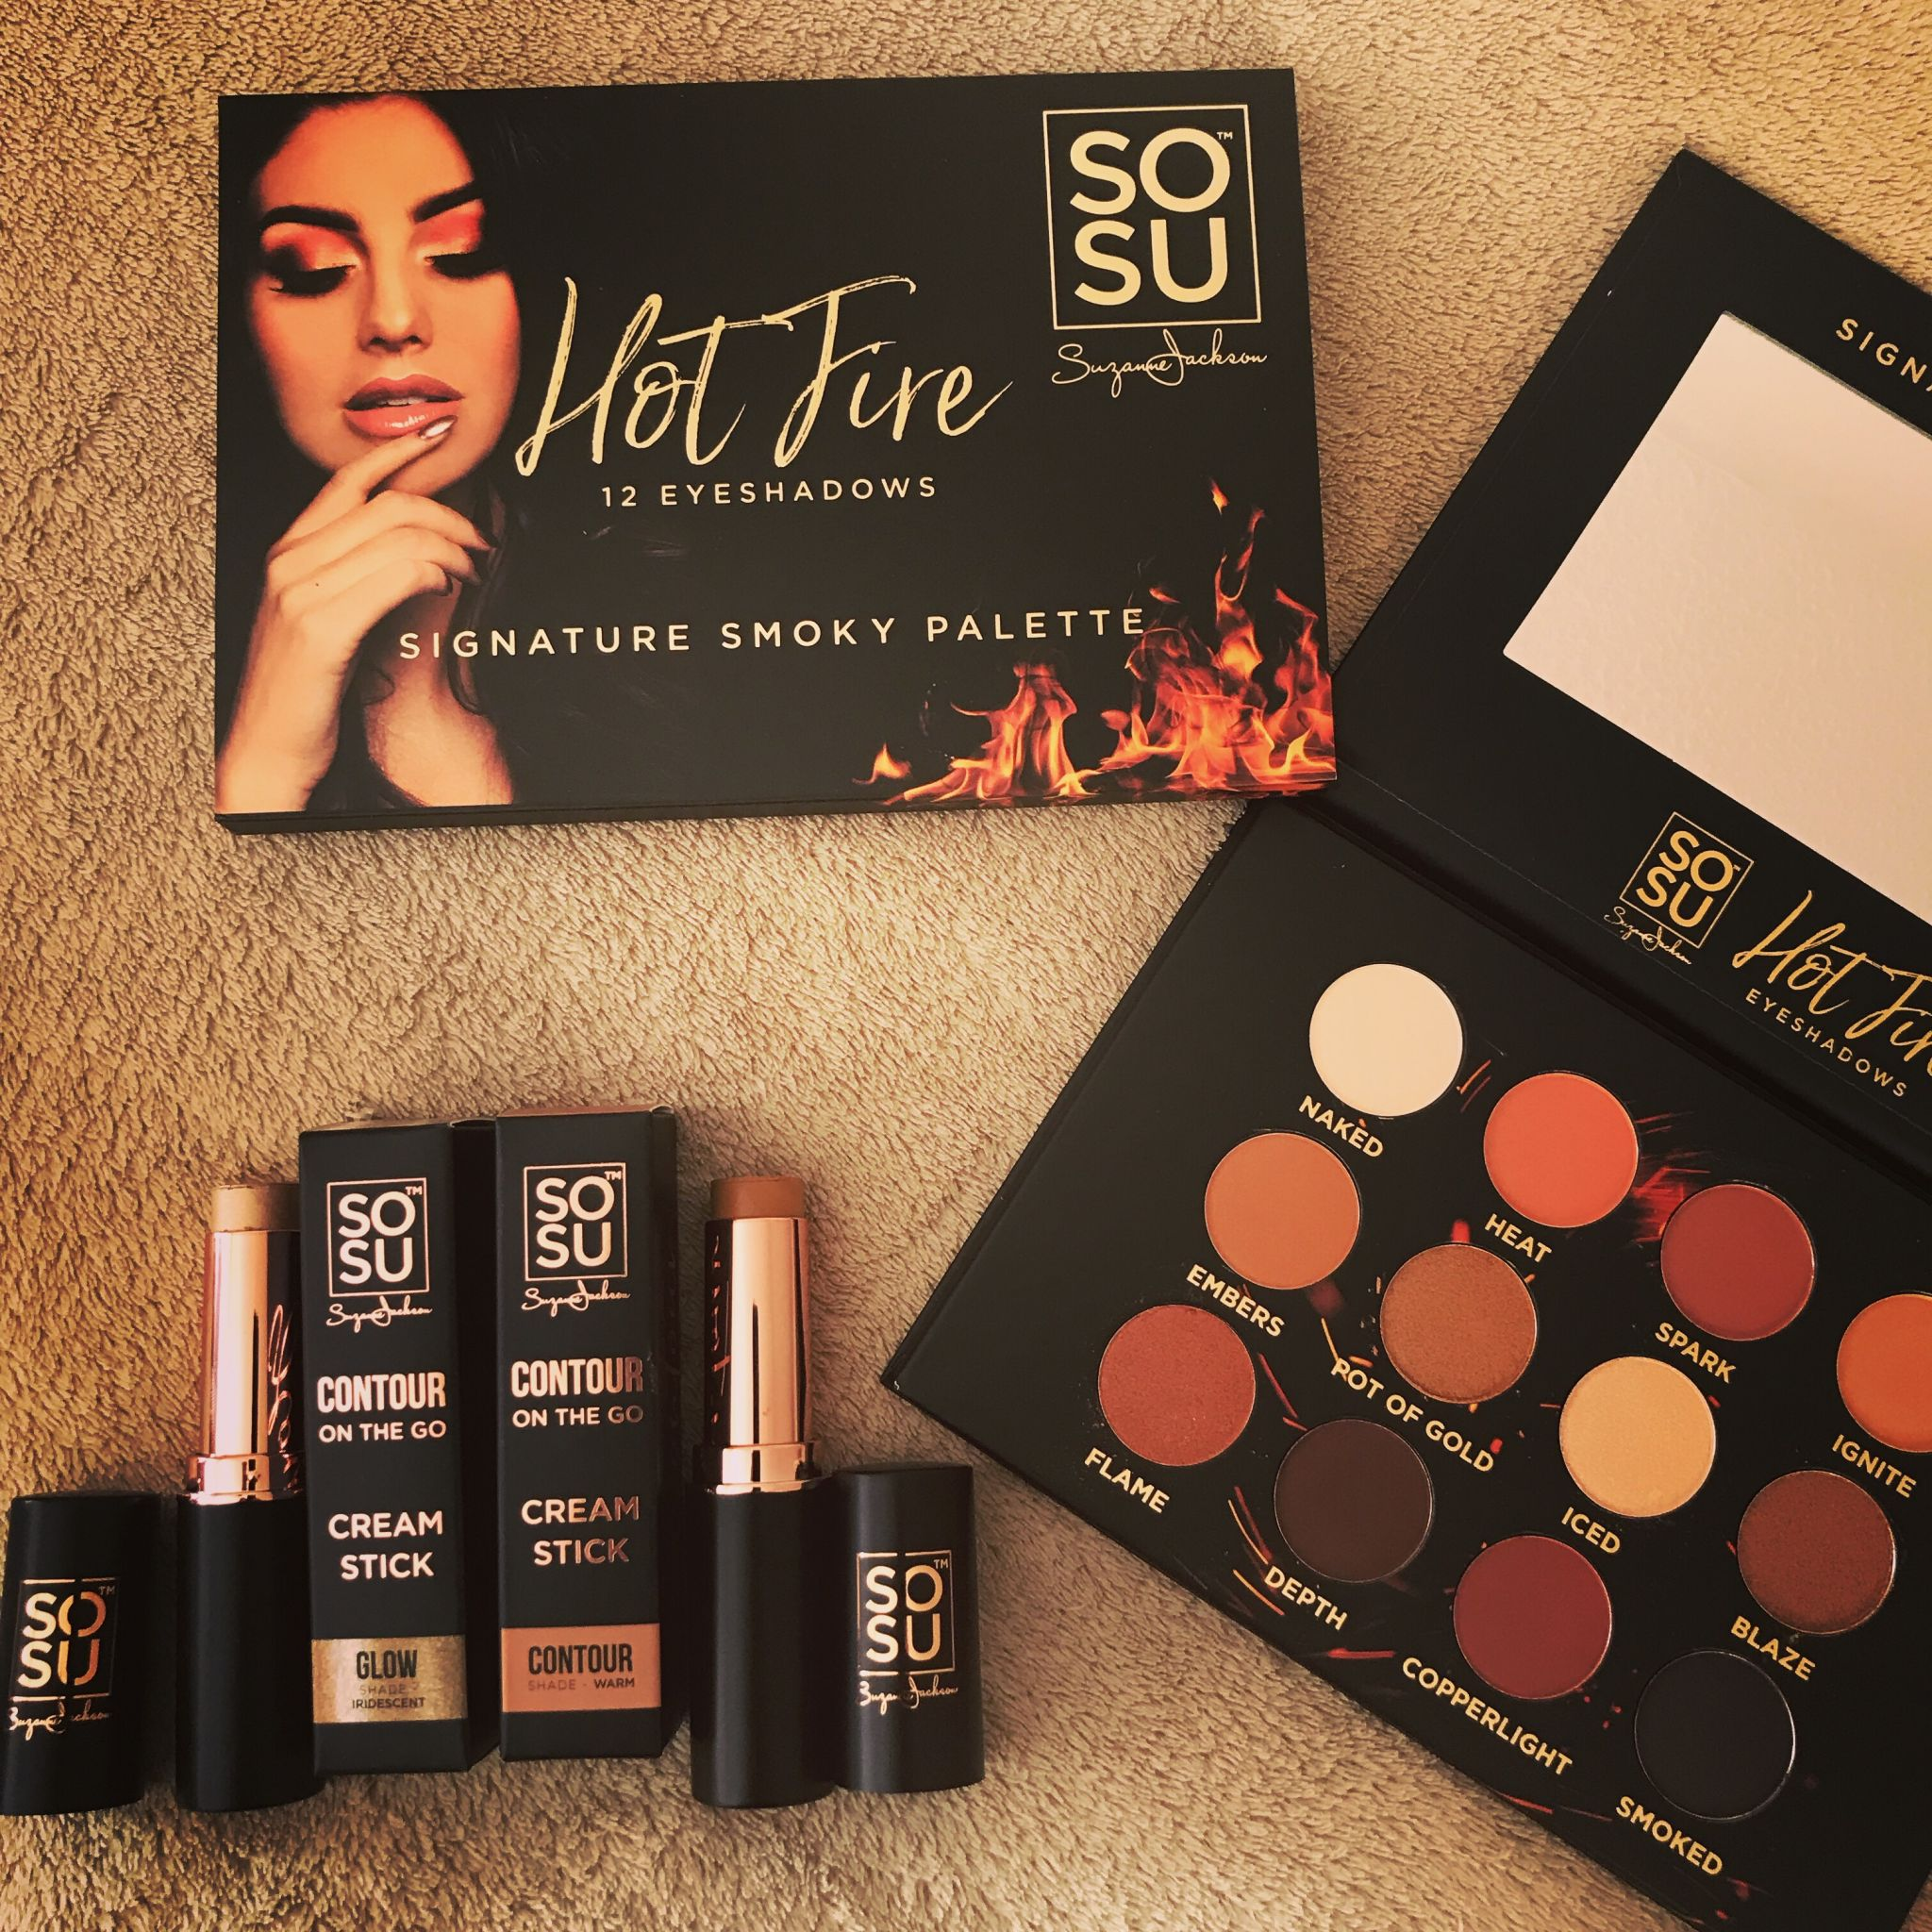 SoSu Hot fire palette